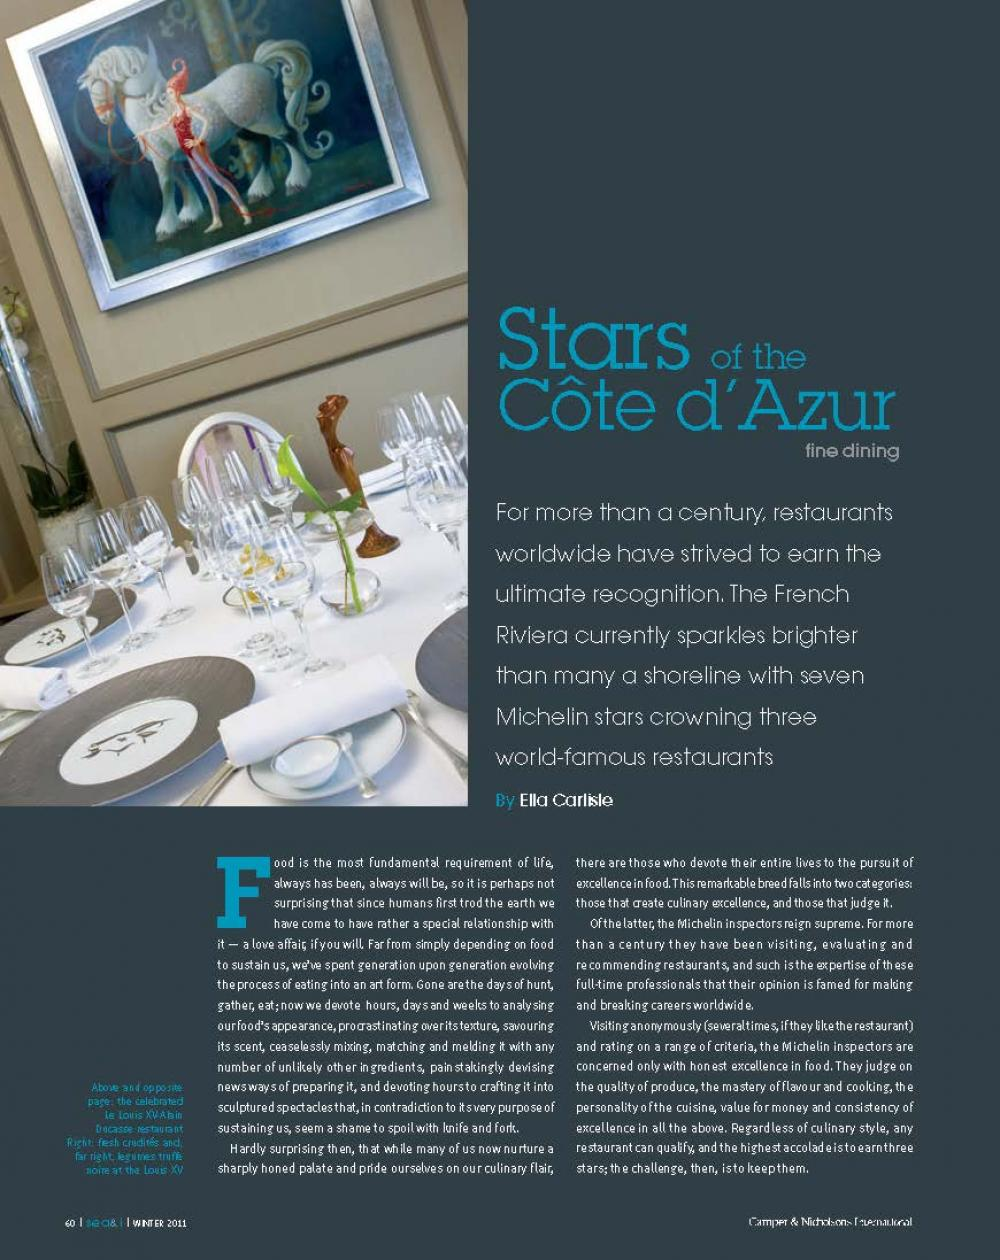 ISSUE 20 - SEA+I - Page 62 | C&N